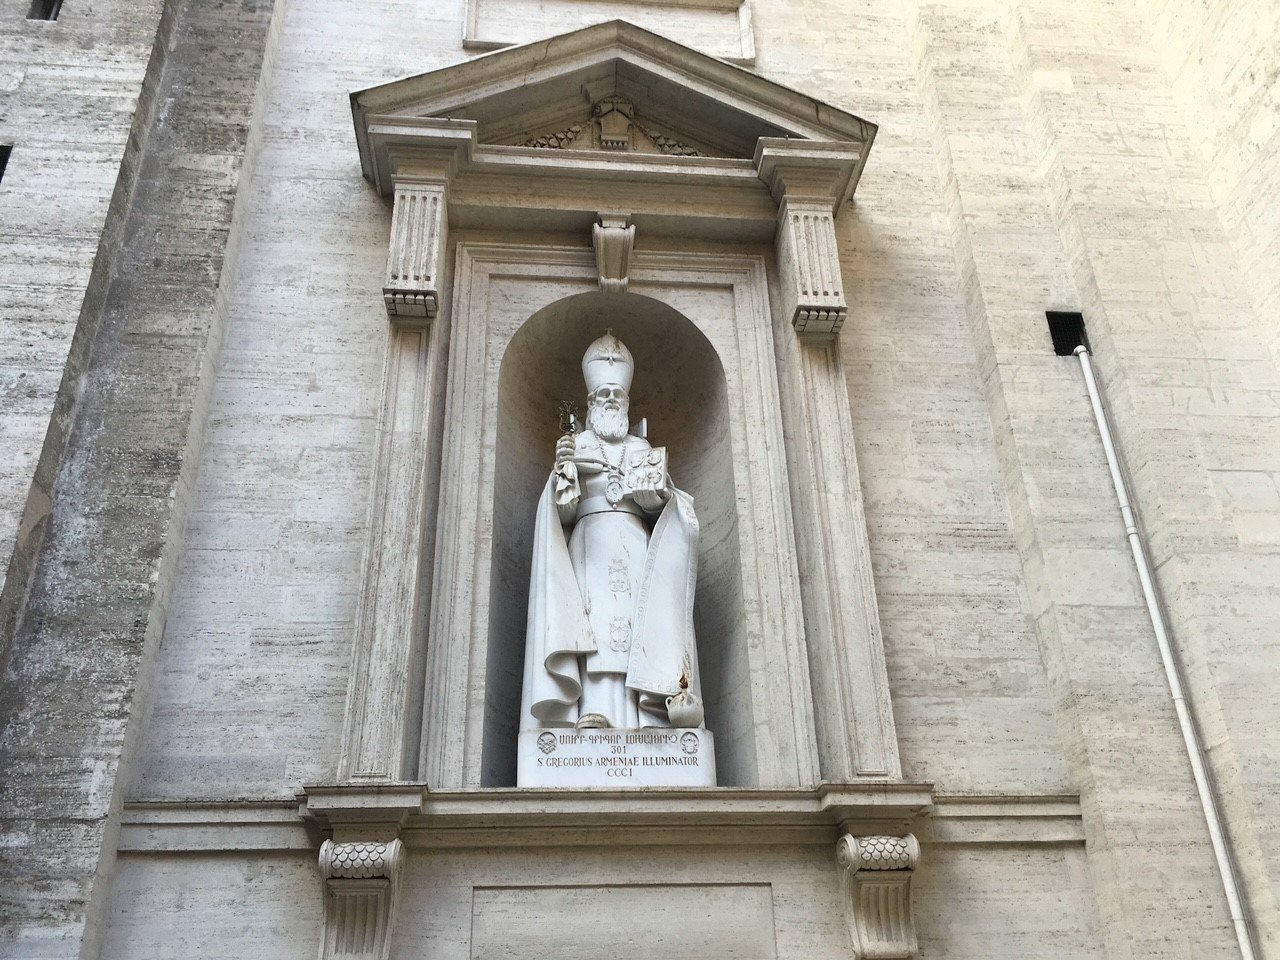 A statue of St. Gregorius at Vatican City